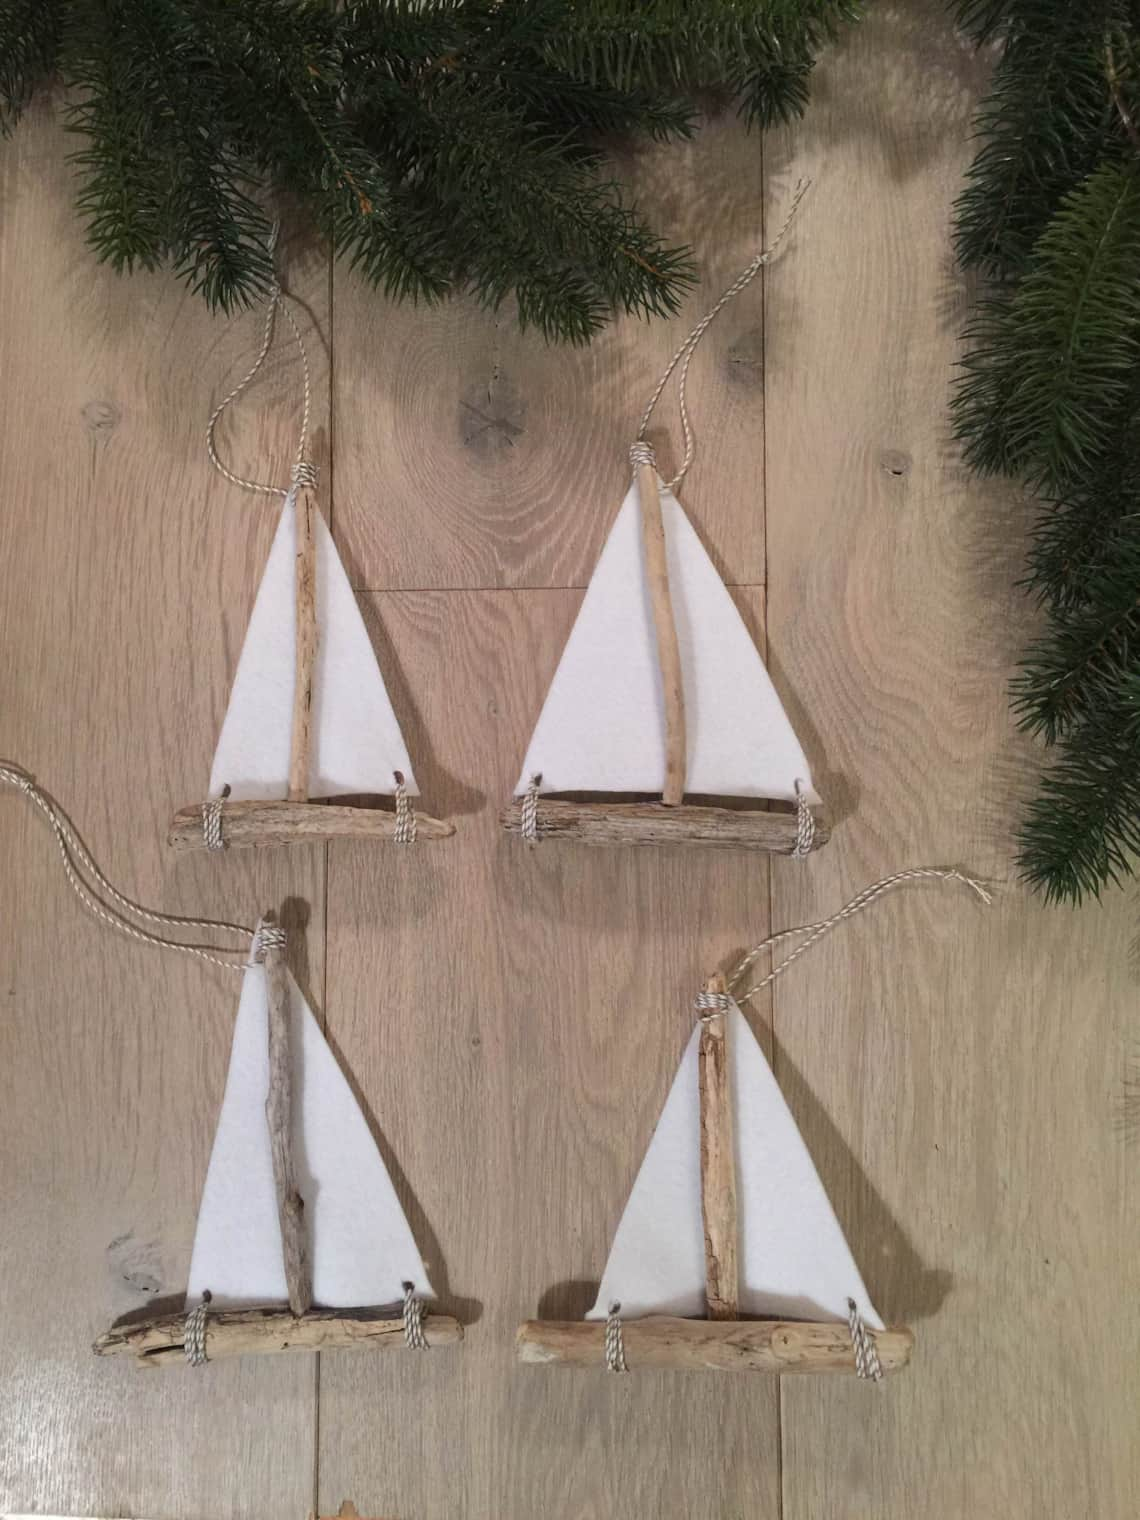 Baker's Twine Through The Whole At The Top Of The Sail And Tie The Ends  Into A Knot You Now Have Apleted Coastal Sailboat For Your Christmas  Tree!